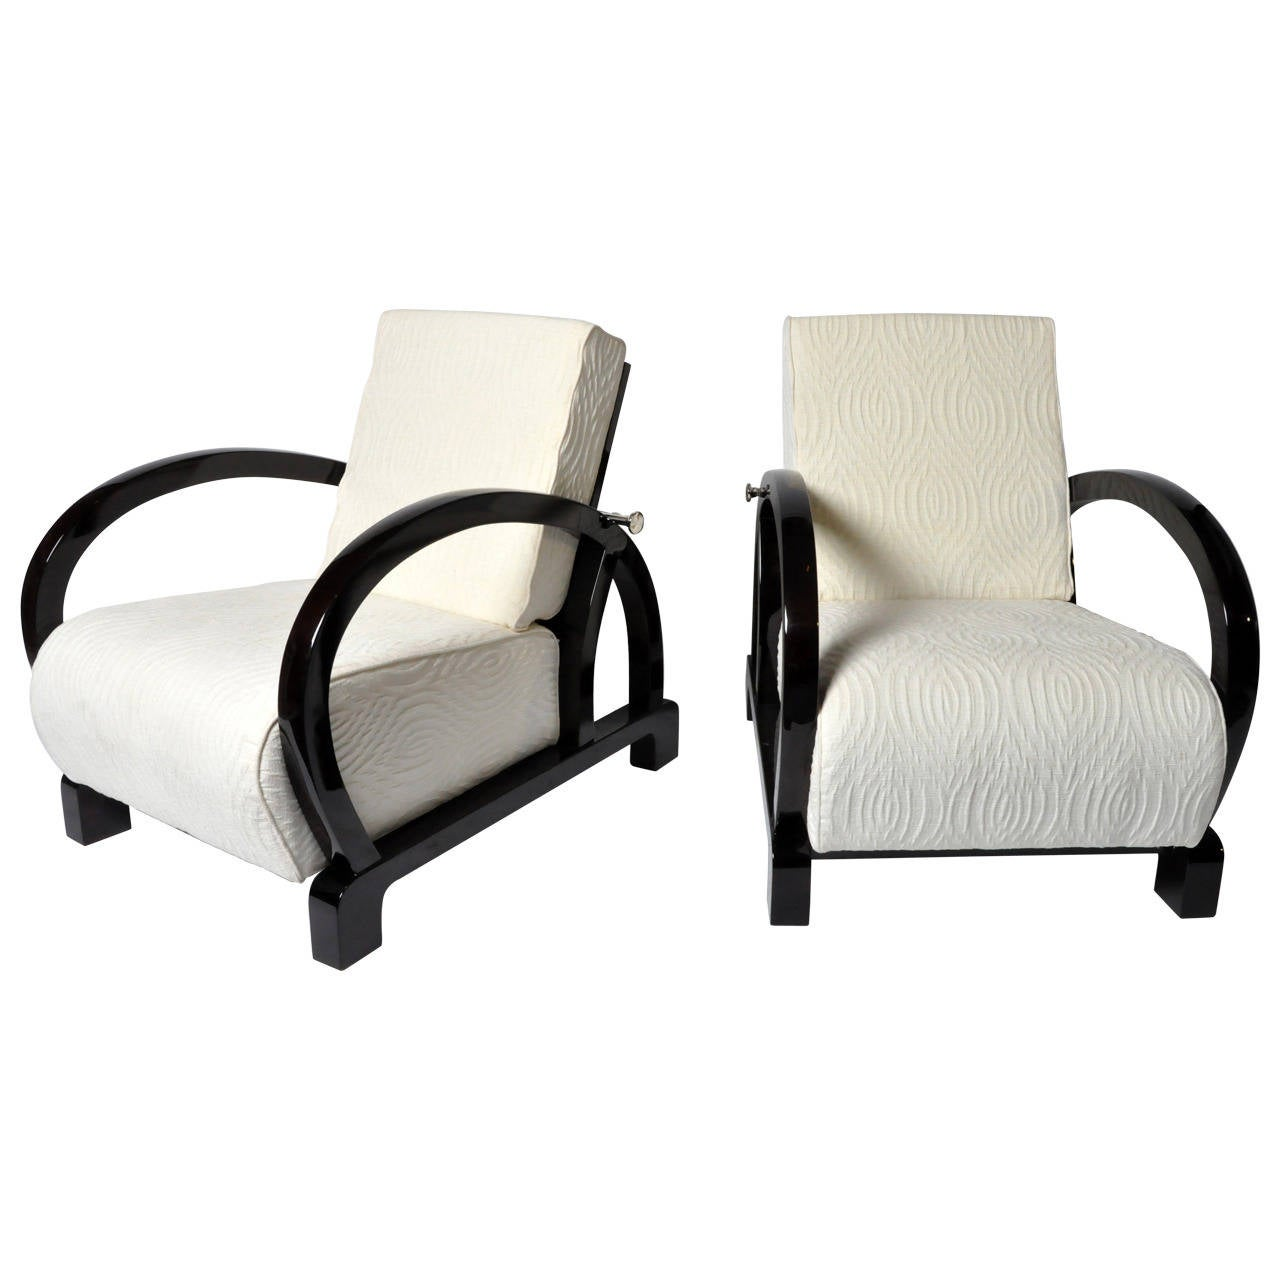 art deco style club chairs ergonomic kneeling chair nz pair of lounge at 1stdibs